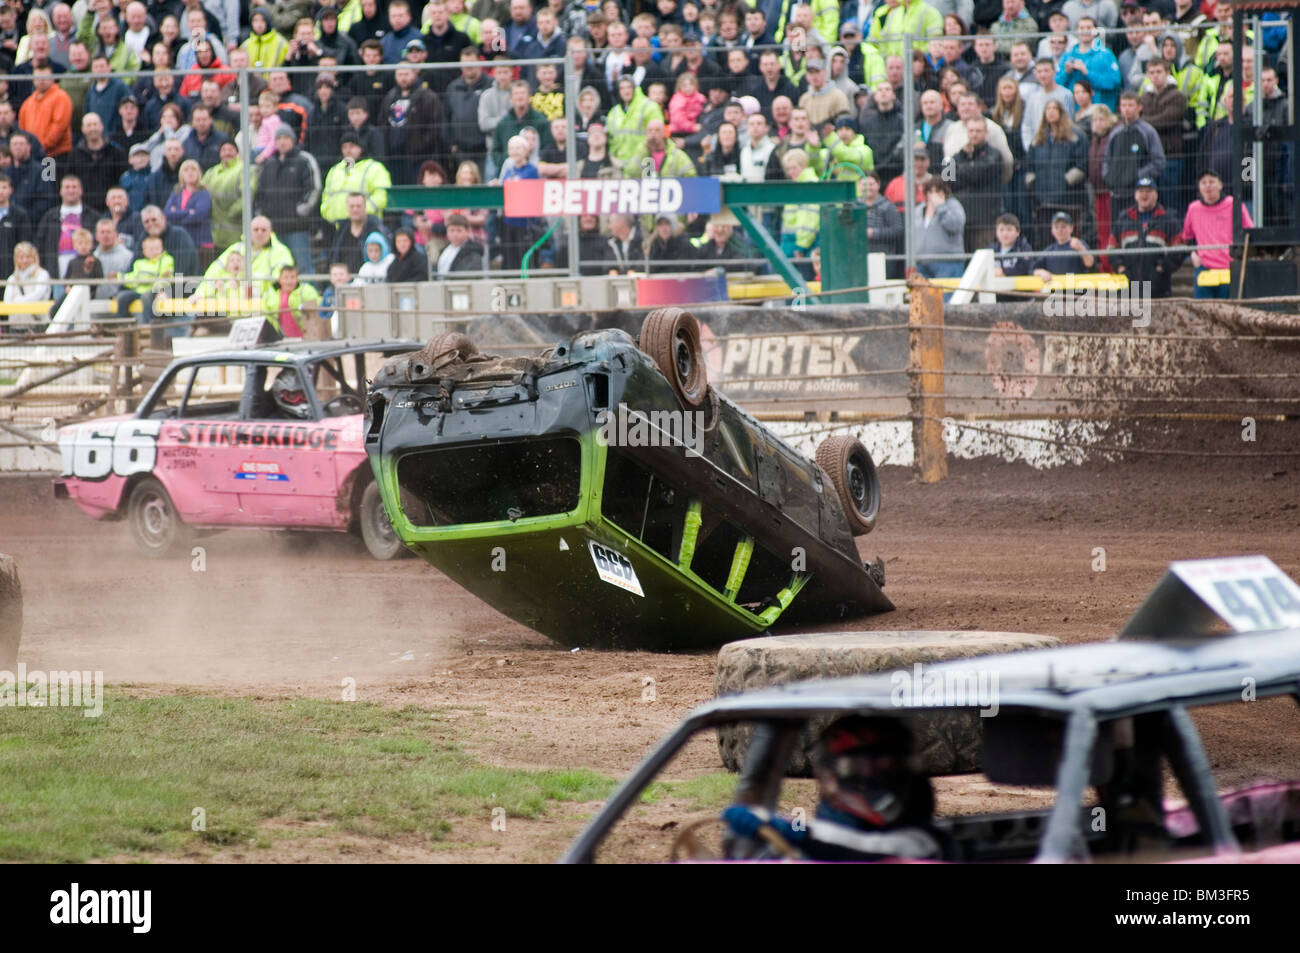 Banger Racing Race Car Cars Crash Bash Bashing Dent Wreck Crashes